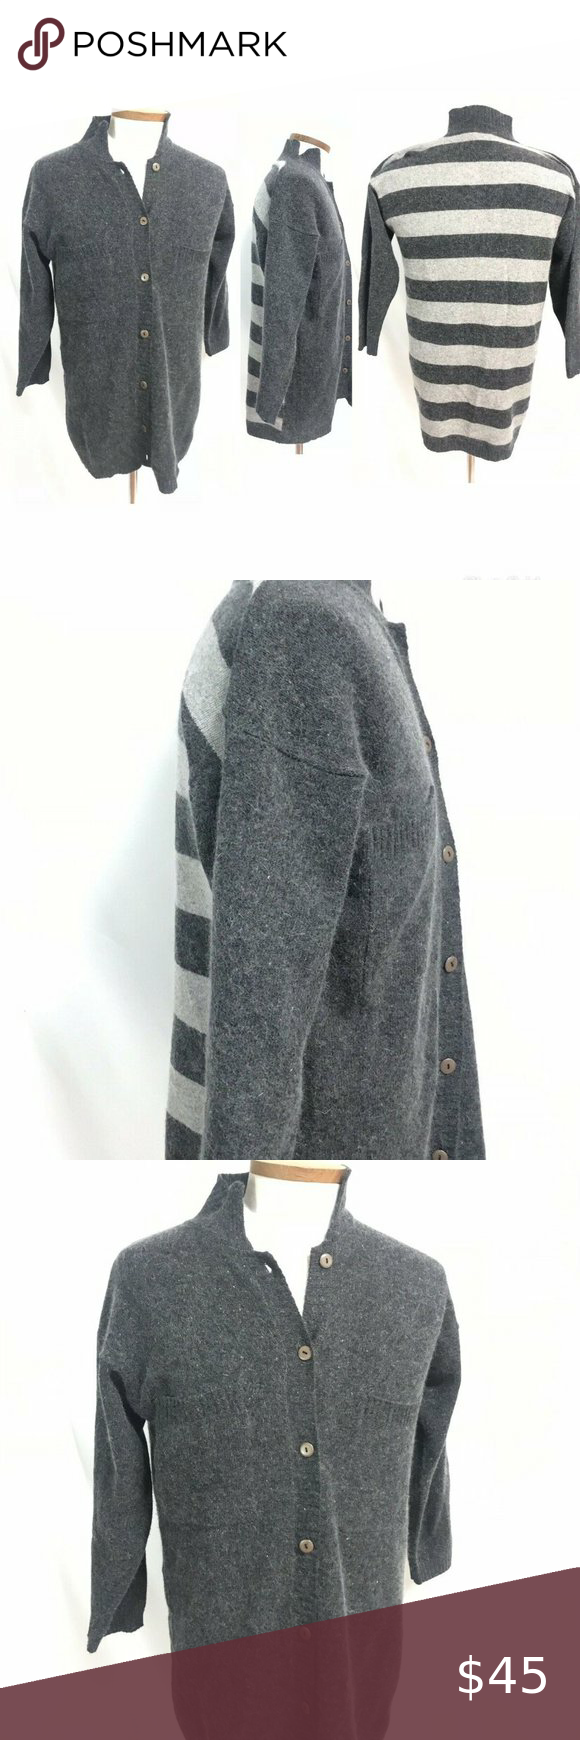 Qui Designer Collection men's striped sweater Size Medium   Measurements in inches  Total length: 32  Armpit to armpit: 22  Waist around: 40  Sleeve length: 20 (slight drop shoulder design)  (For store use only: Bin#054)    Additional characteristics: Angora and Lambswool. Striped. Button up. Chest pockets. Stripes on back. Qui Designer Collection Sweaters